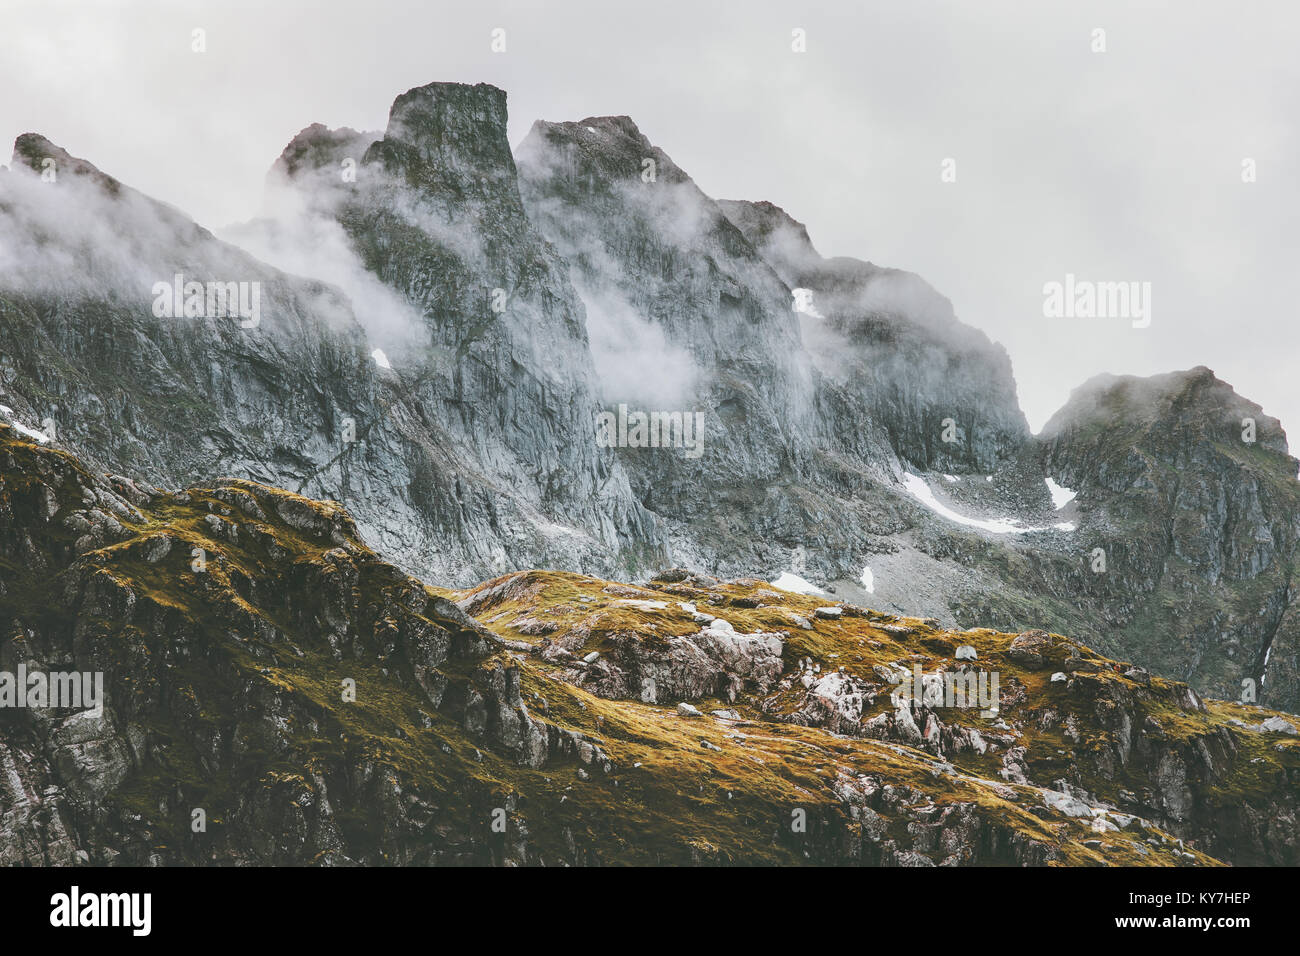 Rocky Mountains Landscape in Norway scandinavian Travel hike wild nature - Stock Image